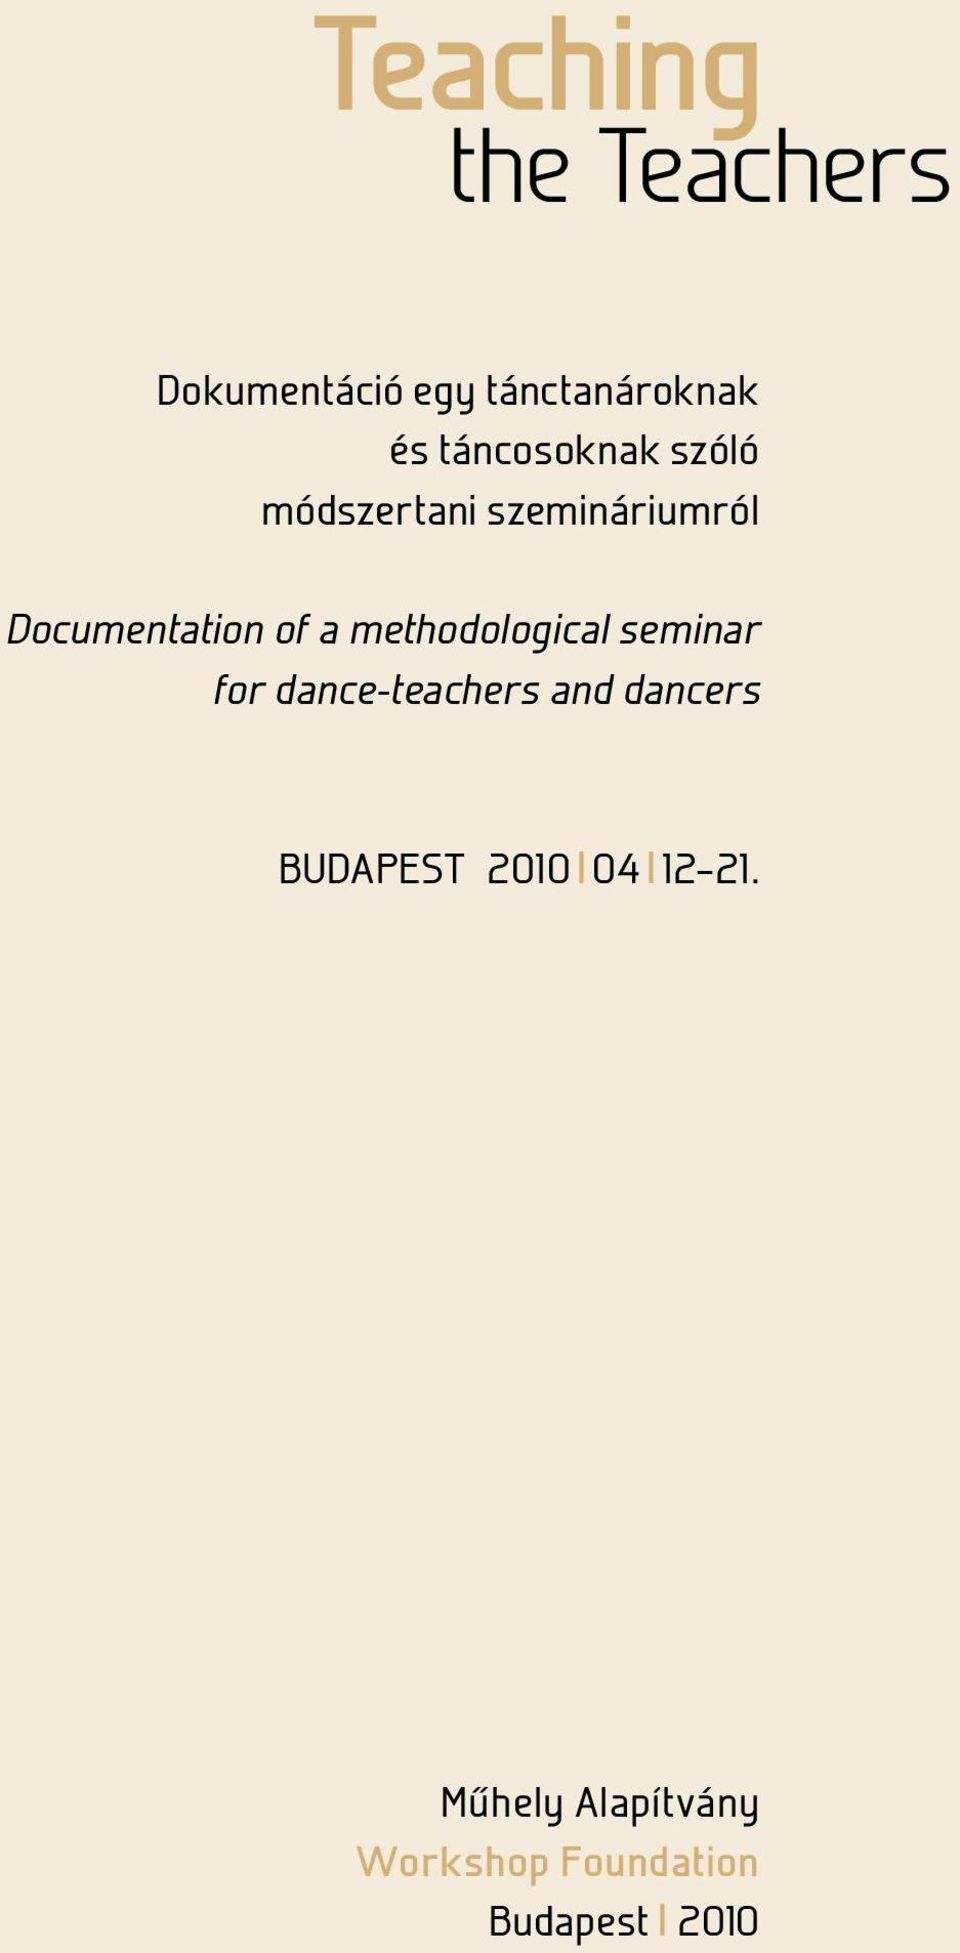 a methodological seminar for dance-teachers and dancers